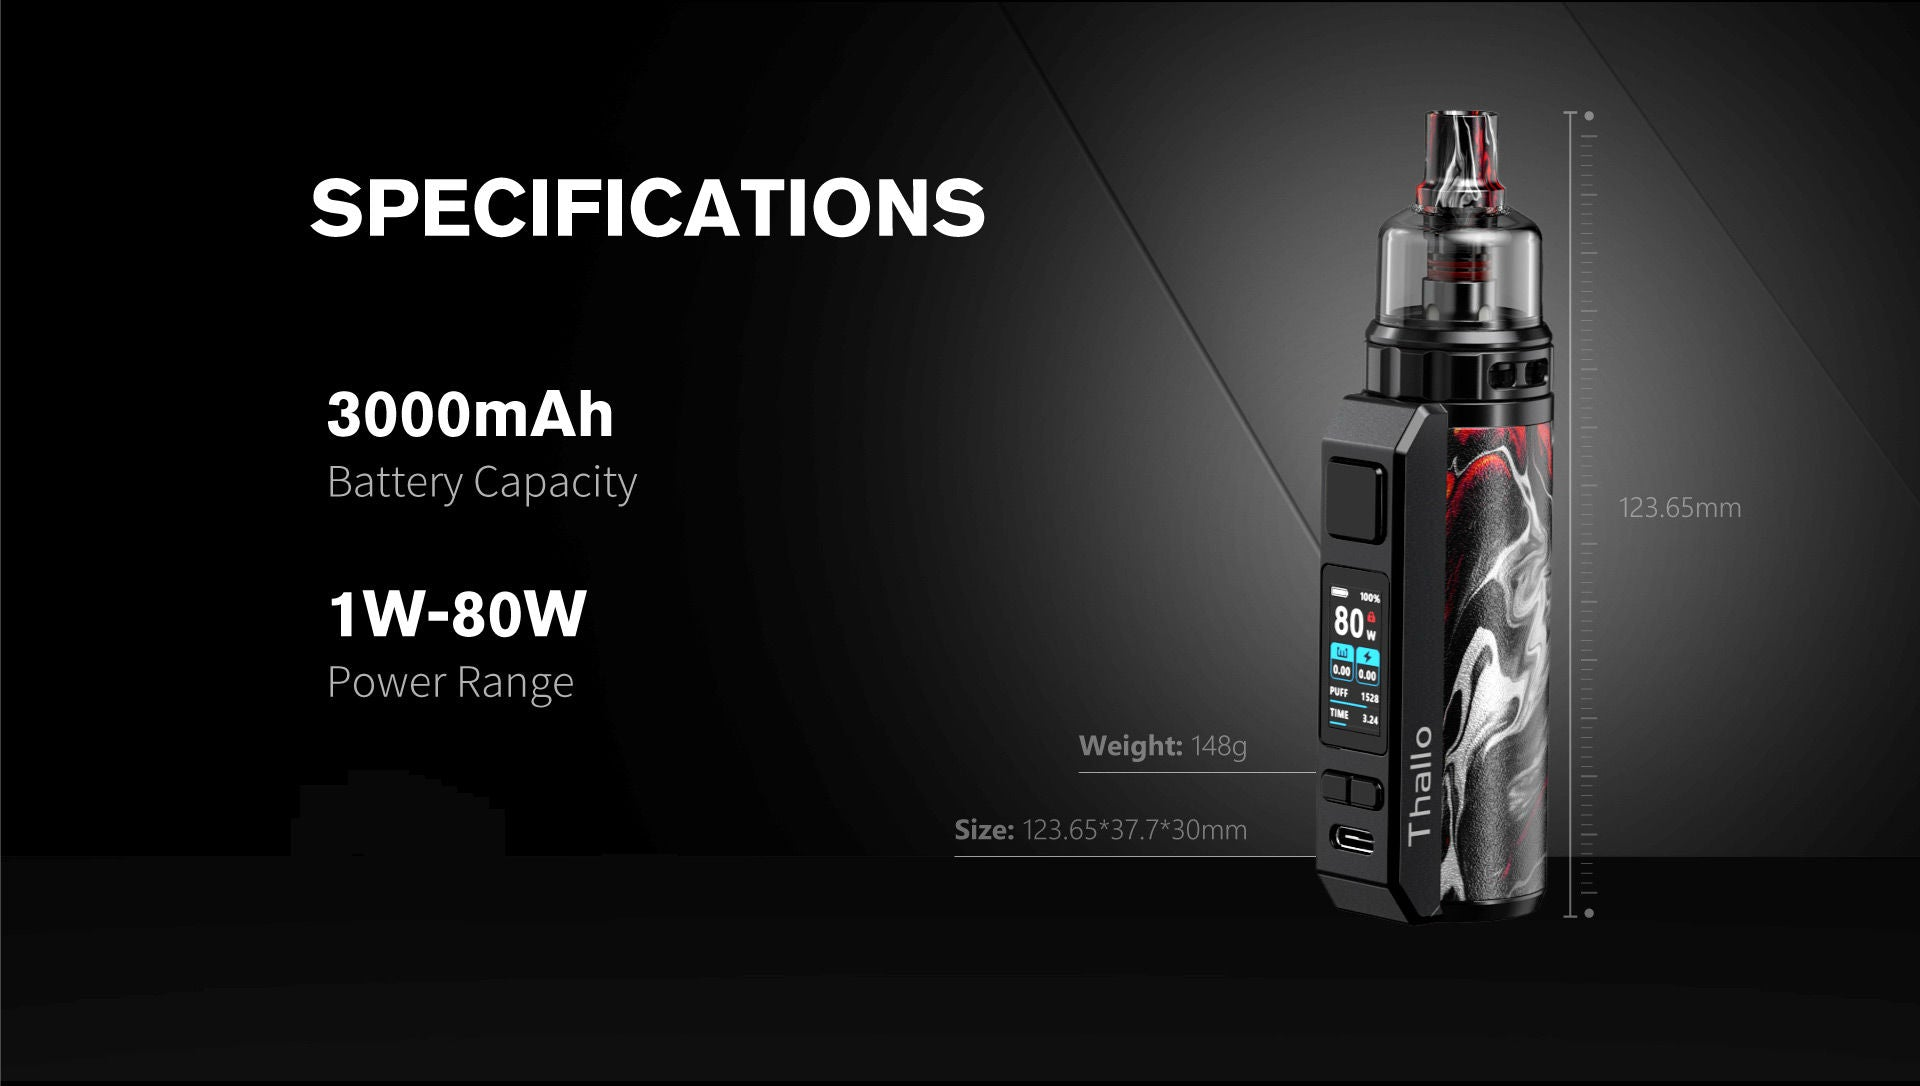 Featuring an integrated 3000mAh battery and 80w output